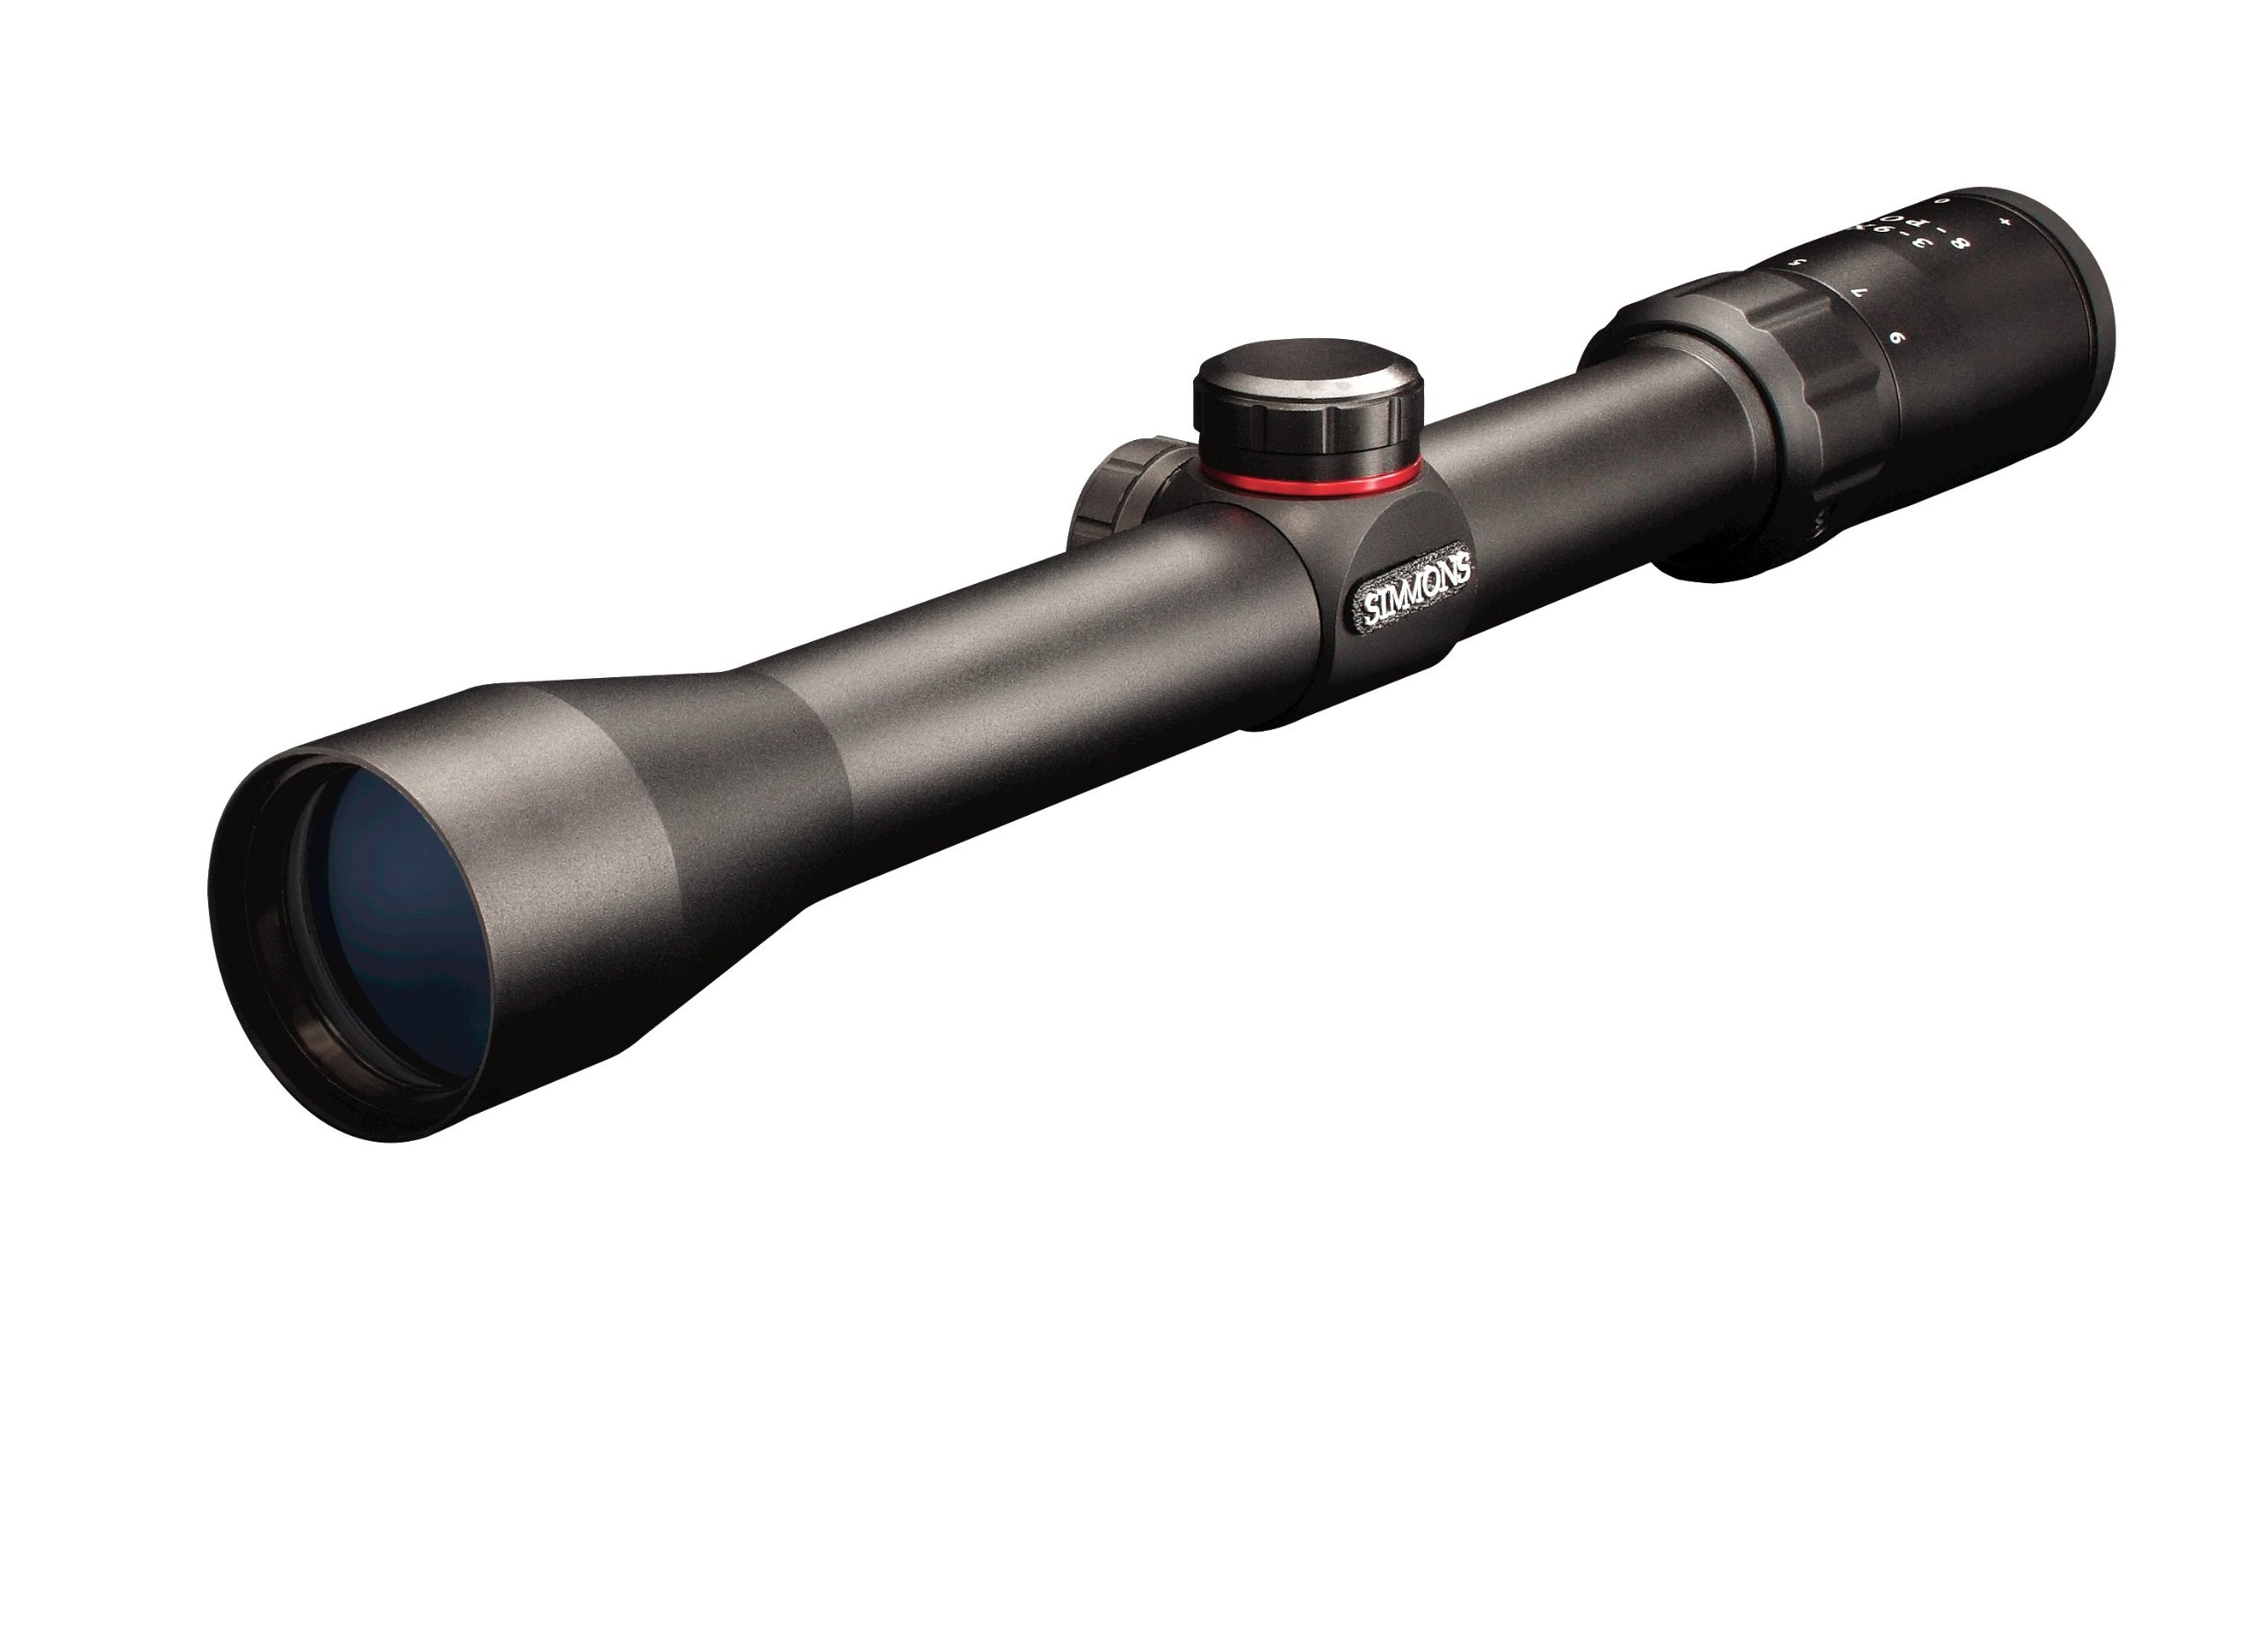 Simmons Truplex Riflescope (3-9X32, Matte) by Simmons